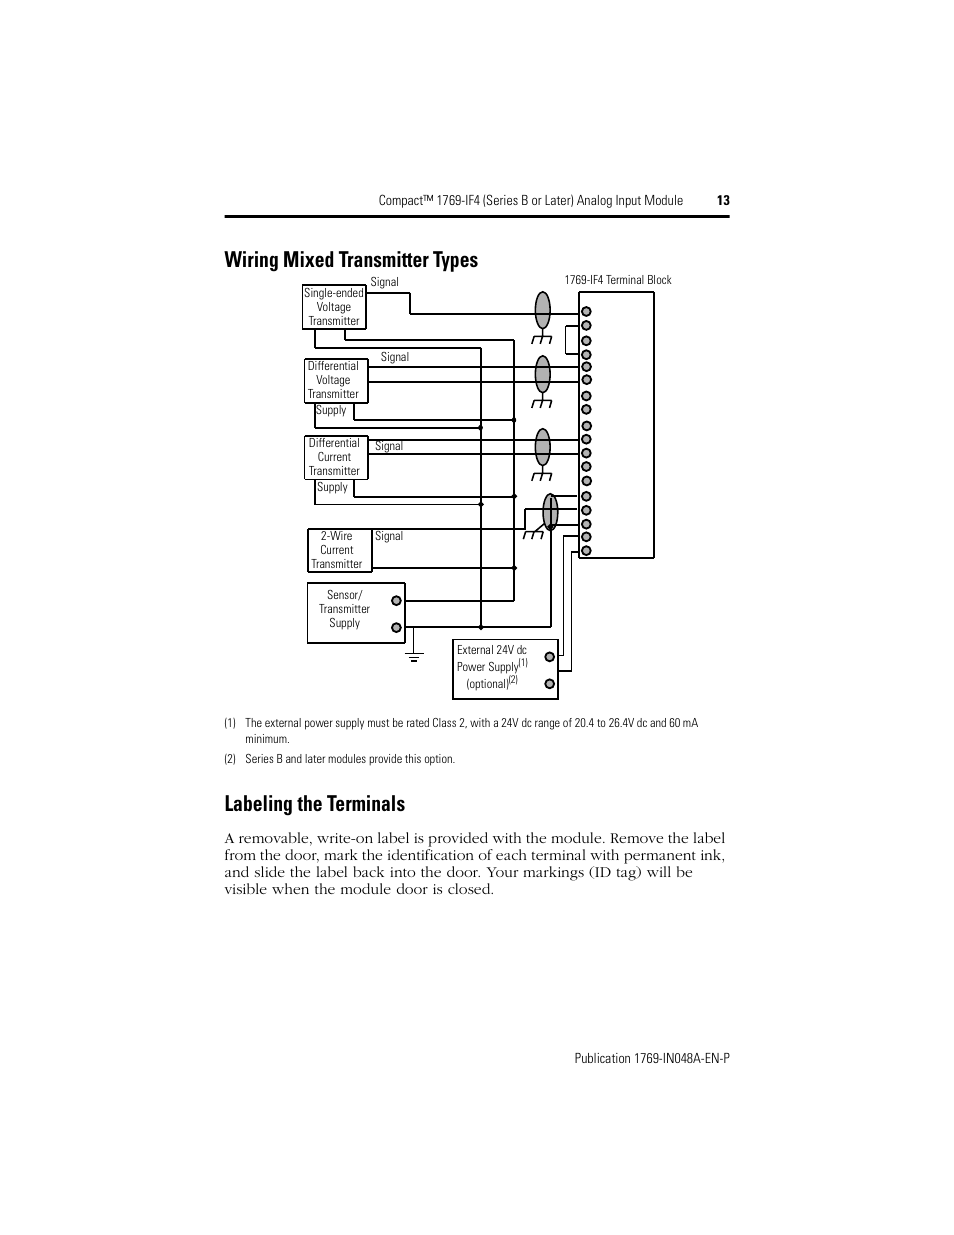 Wiring mixed transmitter types, Labeling the terminals | Rockwell ...